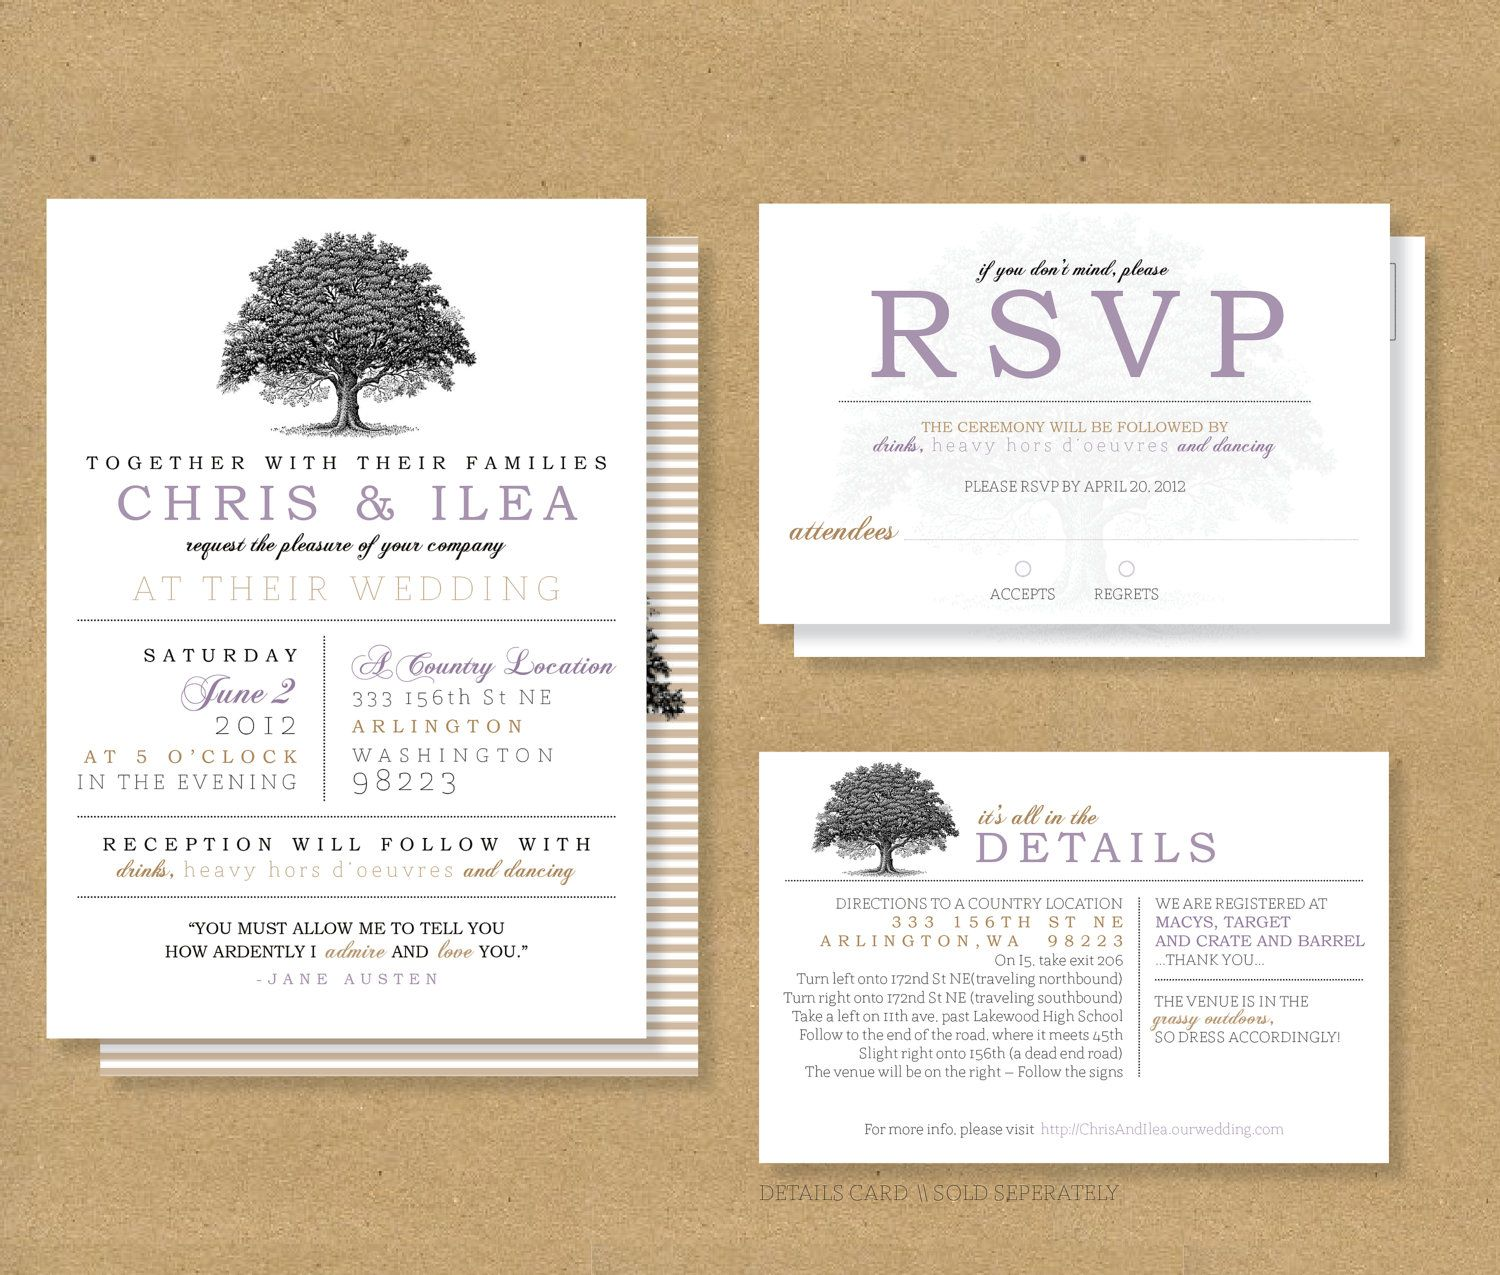 Wedding Invitation Response Cards: Wedding Invitation,Wedding Rsvp Wording Samples Tips